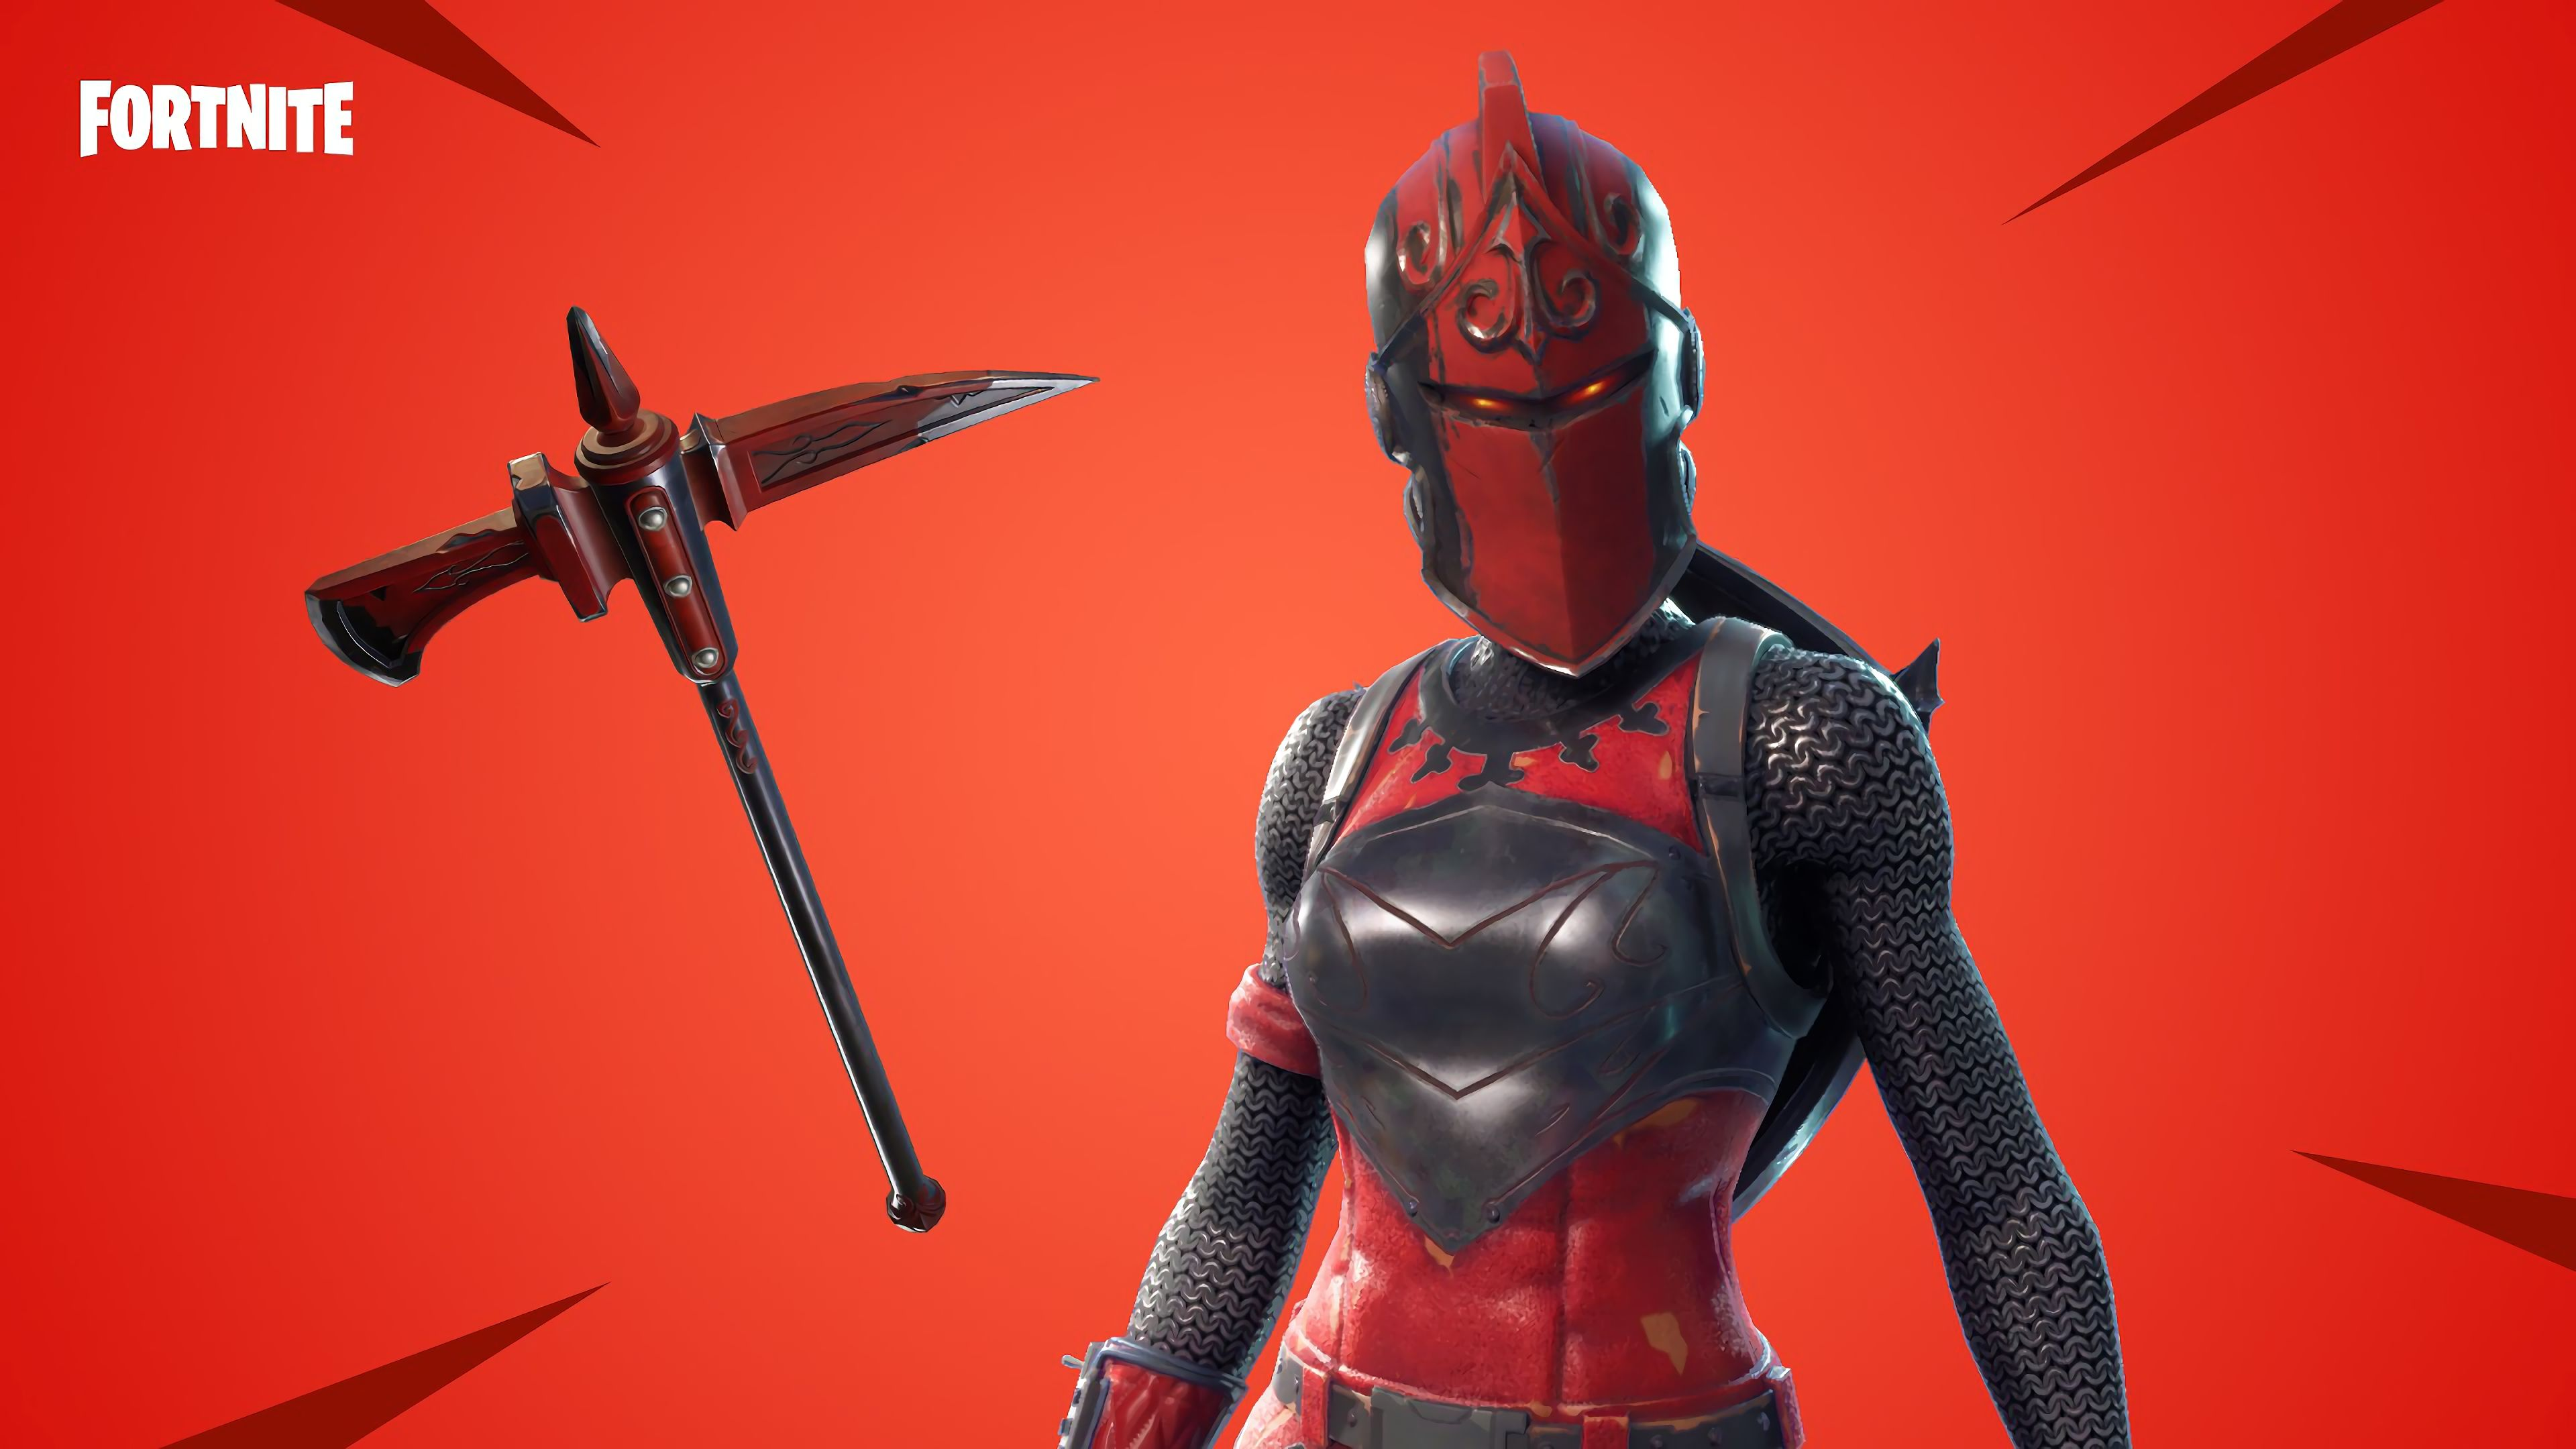 Fortnite Skins Wallpapers Hd Red Knight Red Knight Fortnite Fortnite